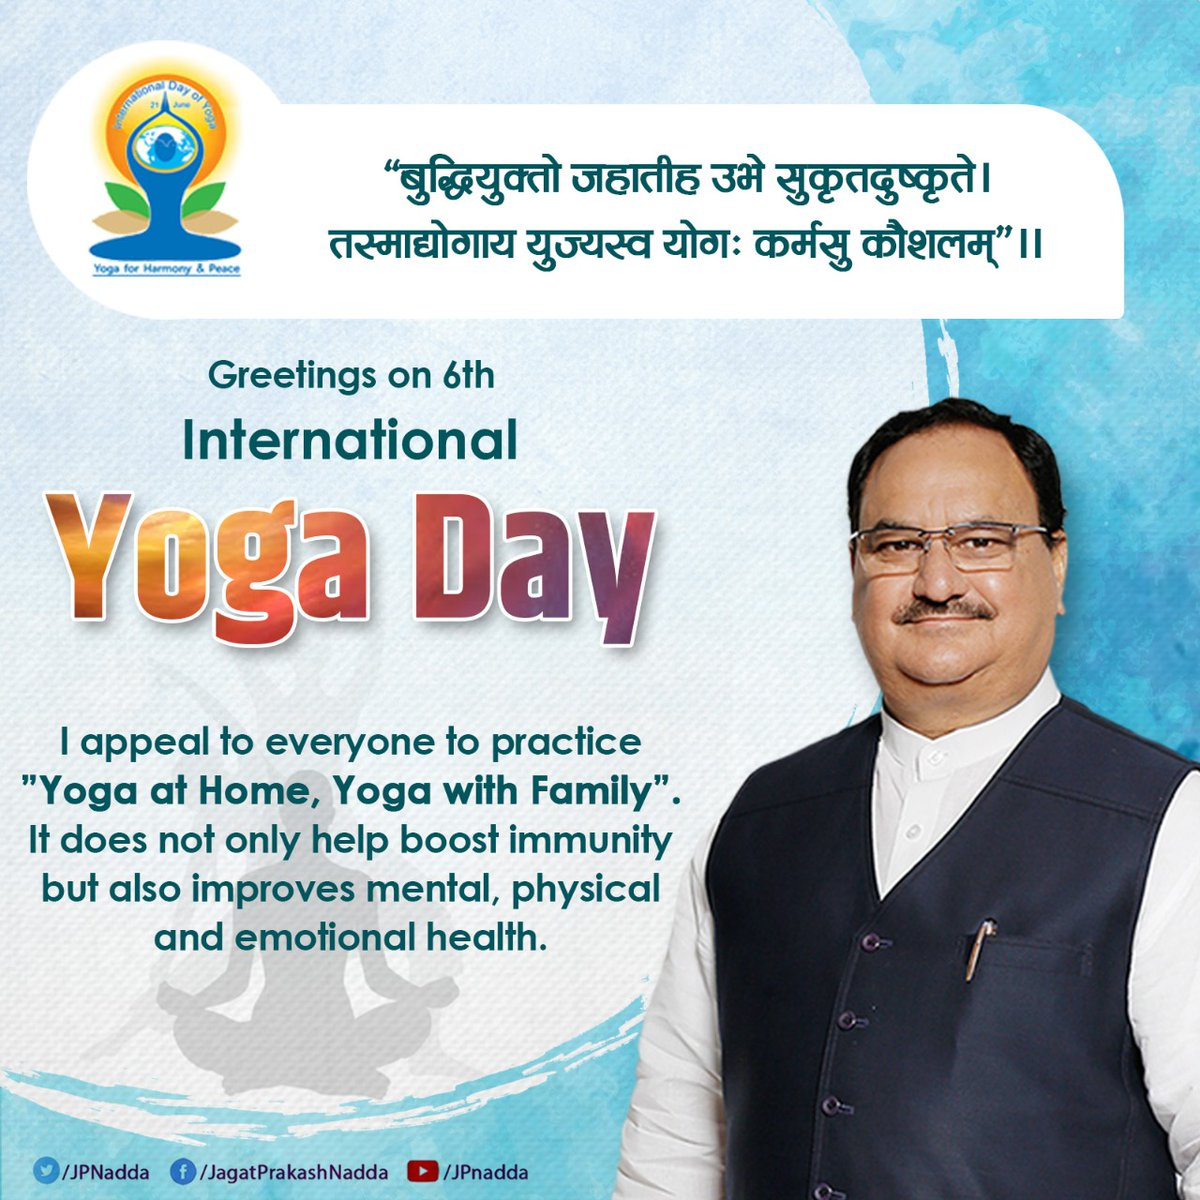 """Greetings to everyone on 6th International Yoga Day. Yoga is an intrinsic part of our ancient civilisation. By performing yoga everyday, we can make the connection between our mind, body and soul stronger. I urge everyone to perform """"Yoga at home, Yoga with family"""" regularly. https://t.co/z1n9JRxiOj"""